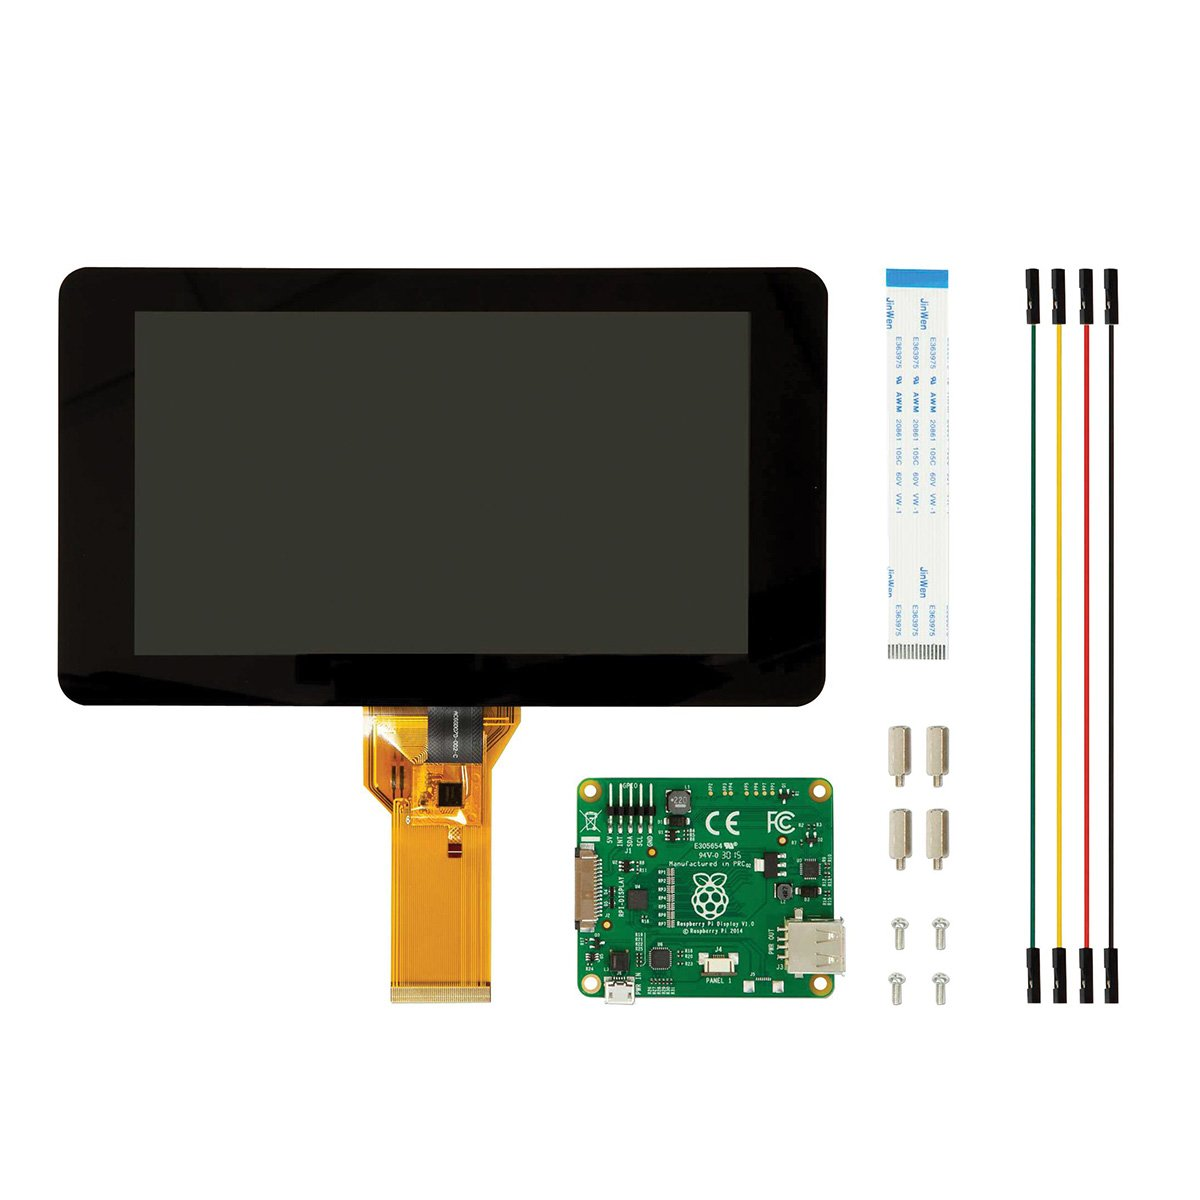 7'' 800x480 Capacitive Touch Screen Display & Matching Base Holder Kits for Raspberry Pi by OLSUS